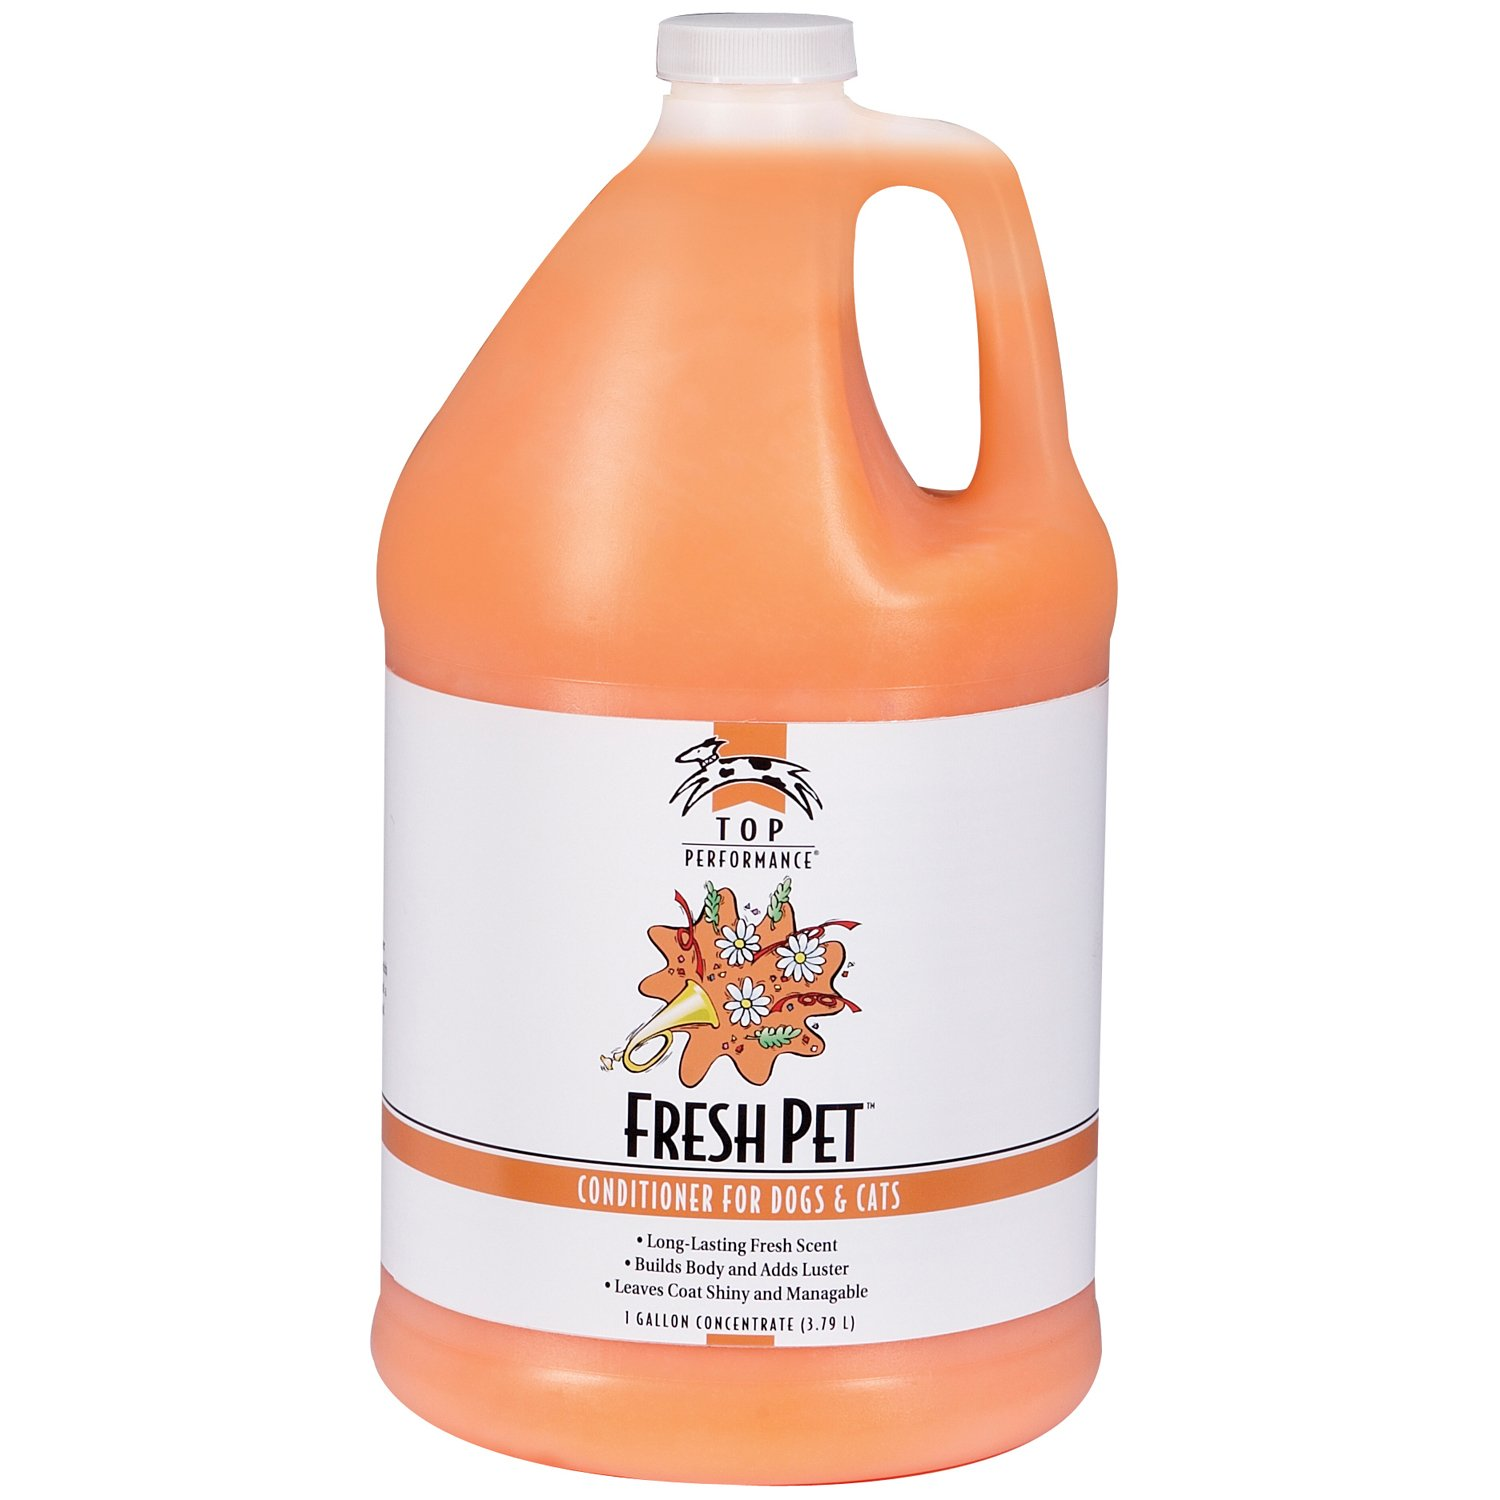 Top Performance Fresh Pet Conditioner, 1-Gallon by Top Performance